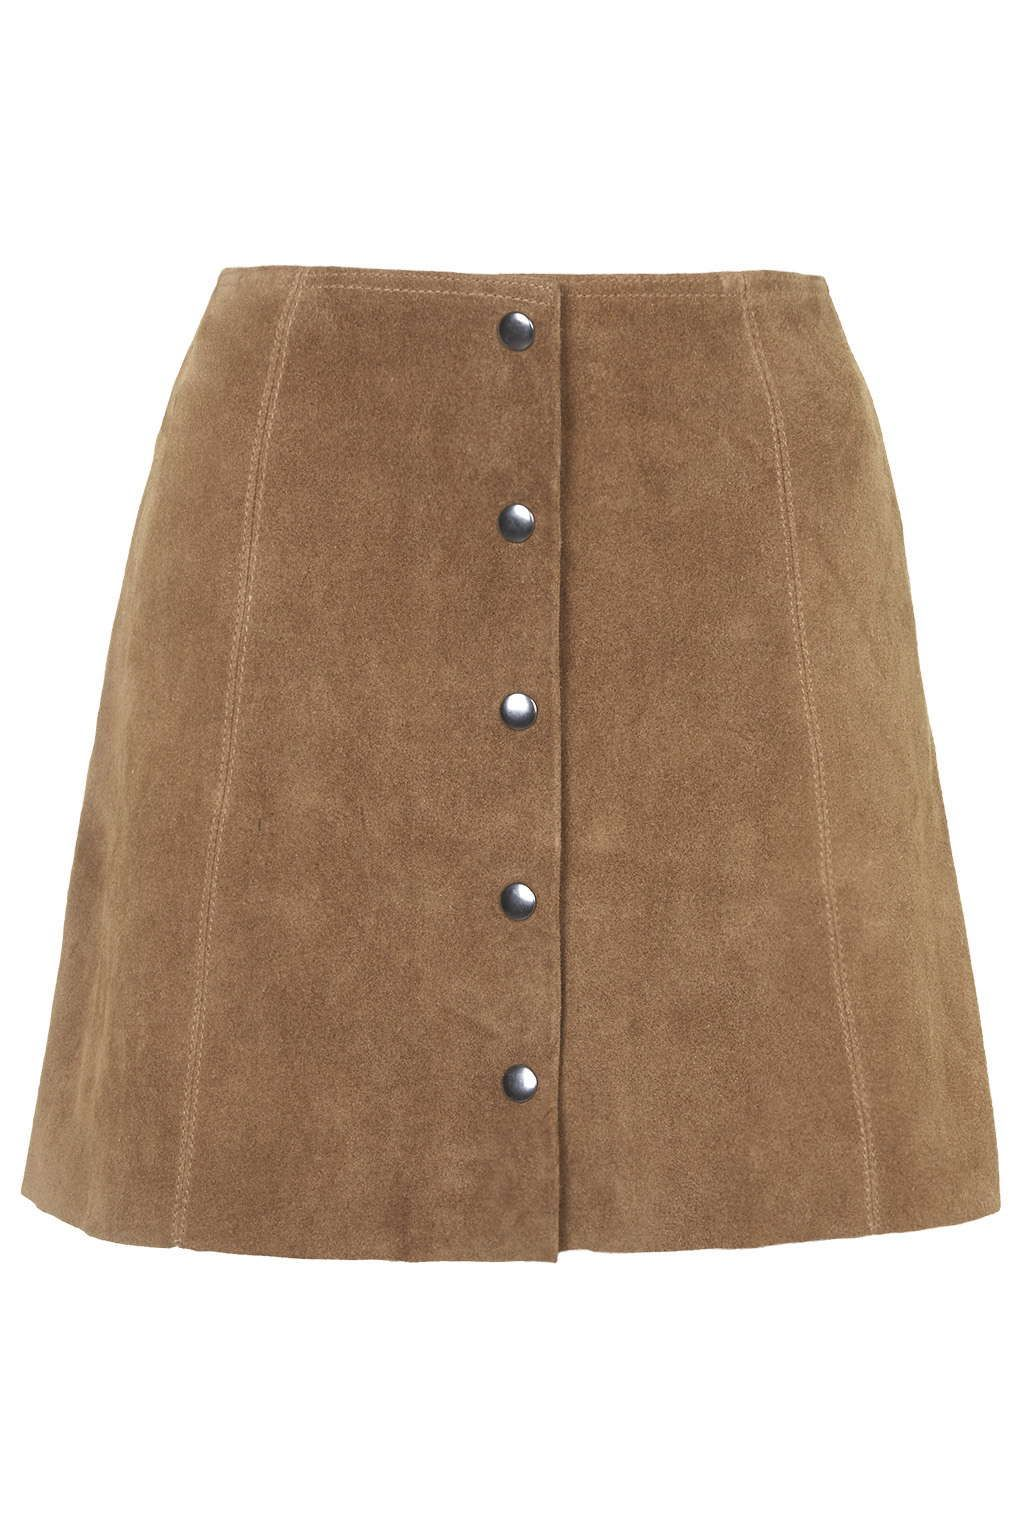 9922bb3ad7 PETITE Suede Button Front A-Line Skirt - Petite - Clothing - Topshop ...